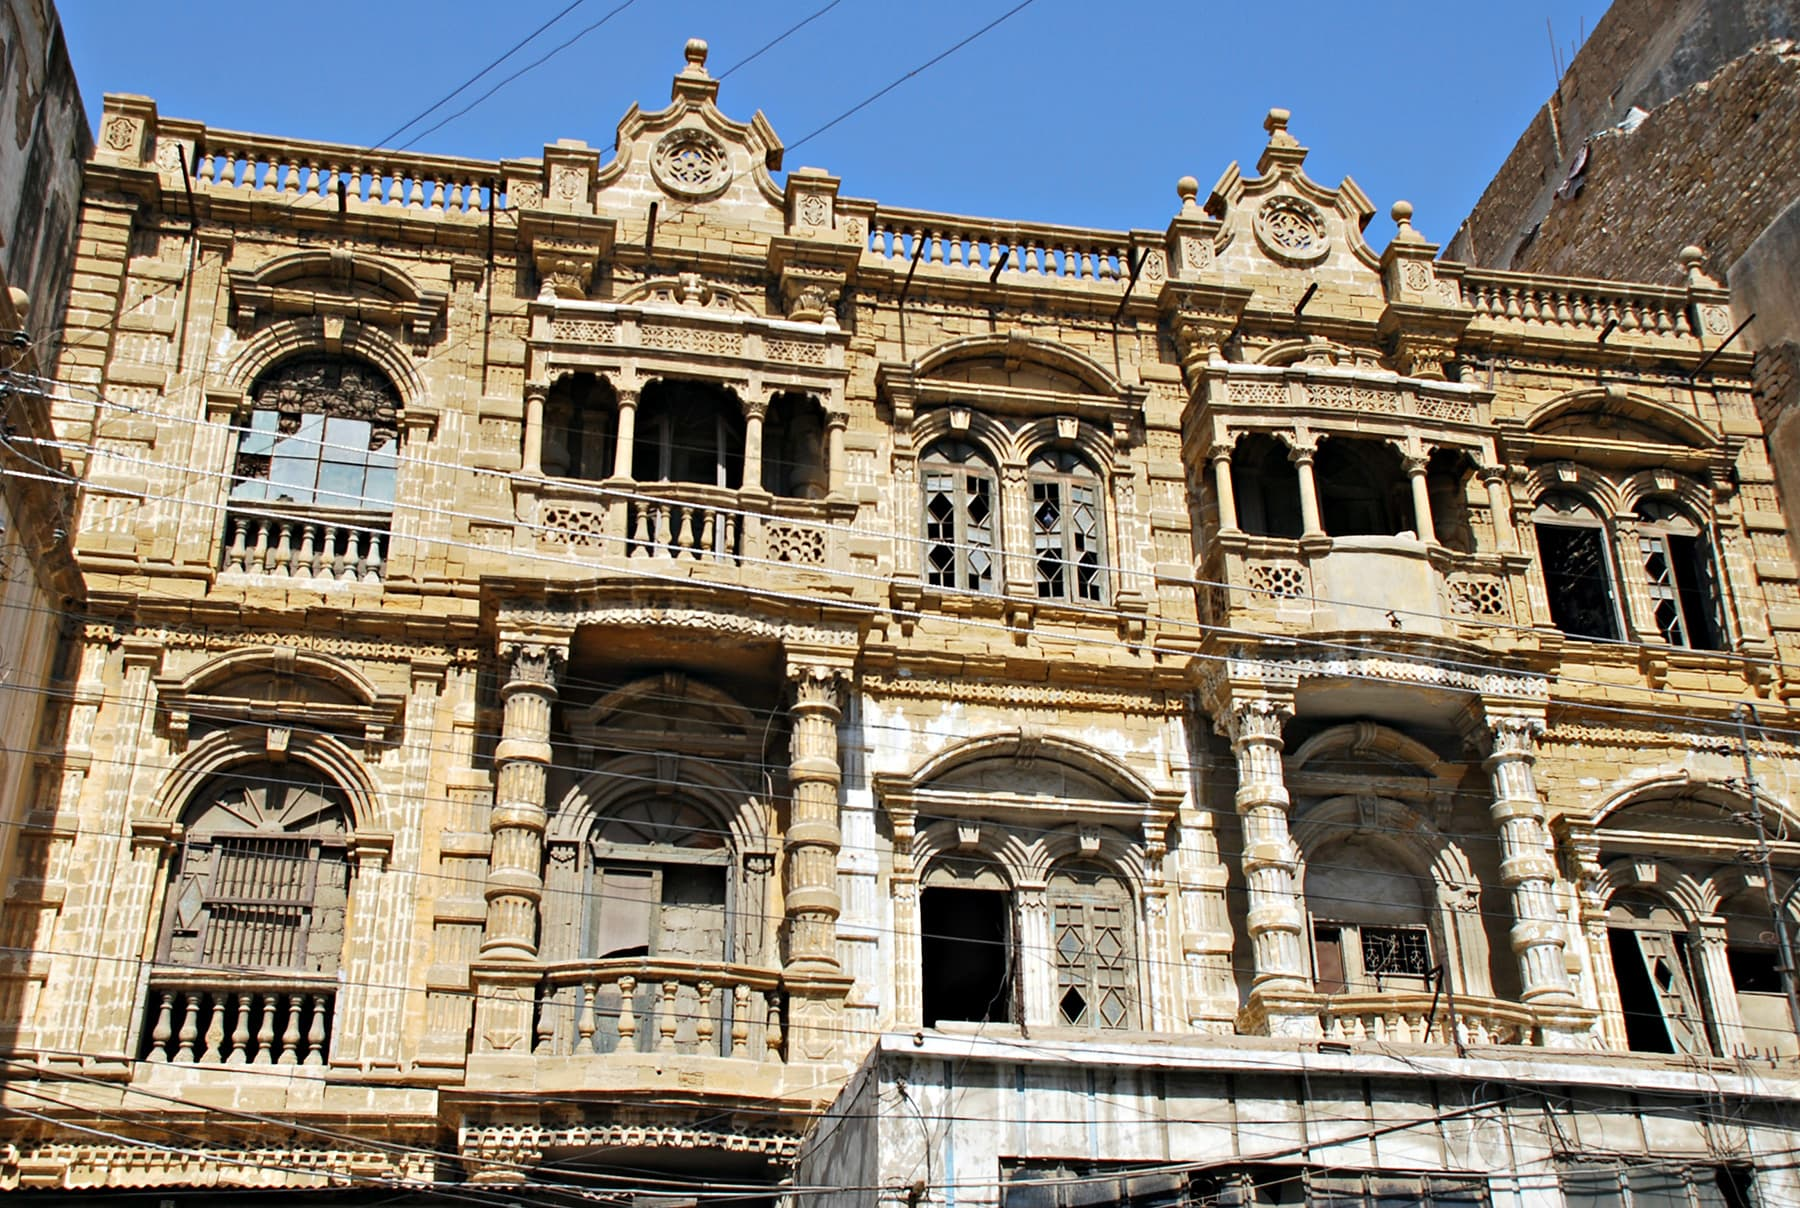 The buildings around Aram Bagh are a visual treat.